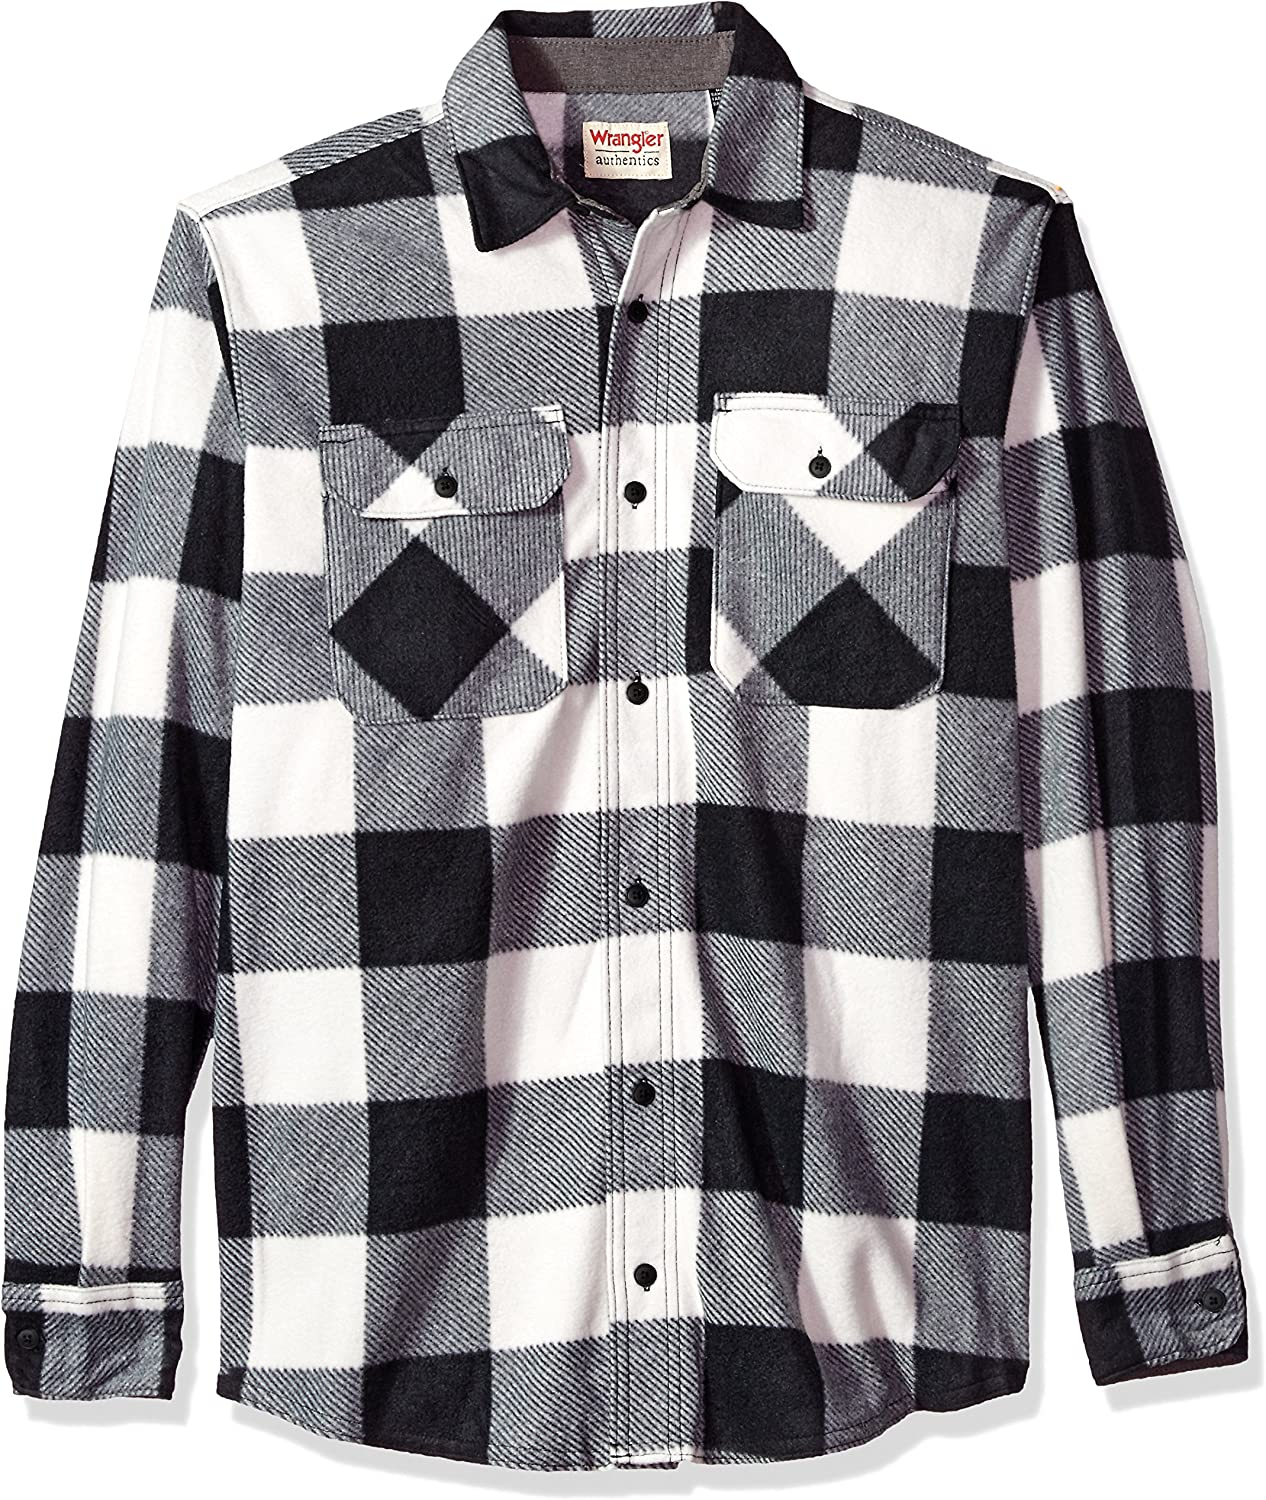 Wrangler Authentics Men's Long Sleeve Heavyweight Plaid Fleece Shirt